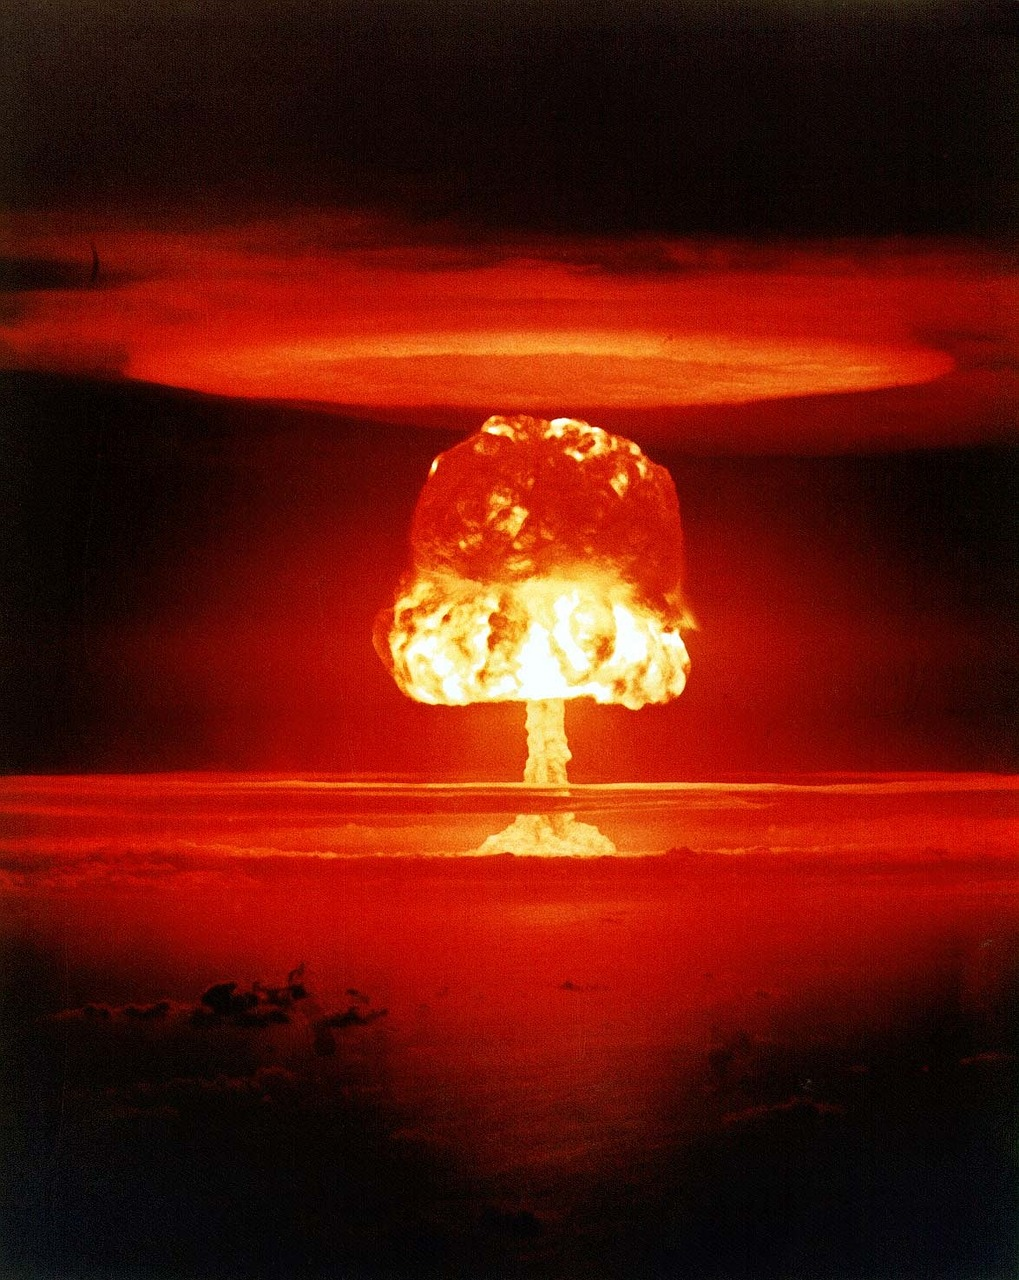 Never again should this terrible nuclear weapon